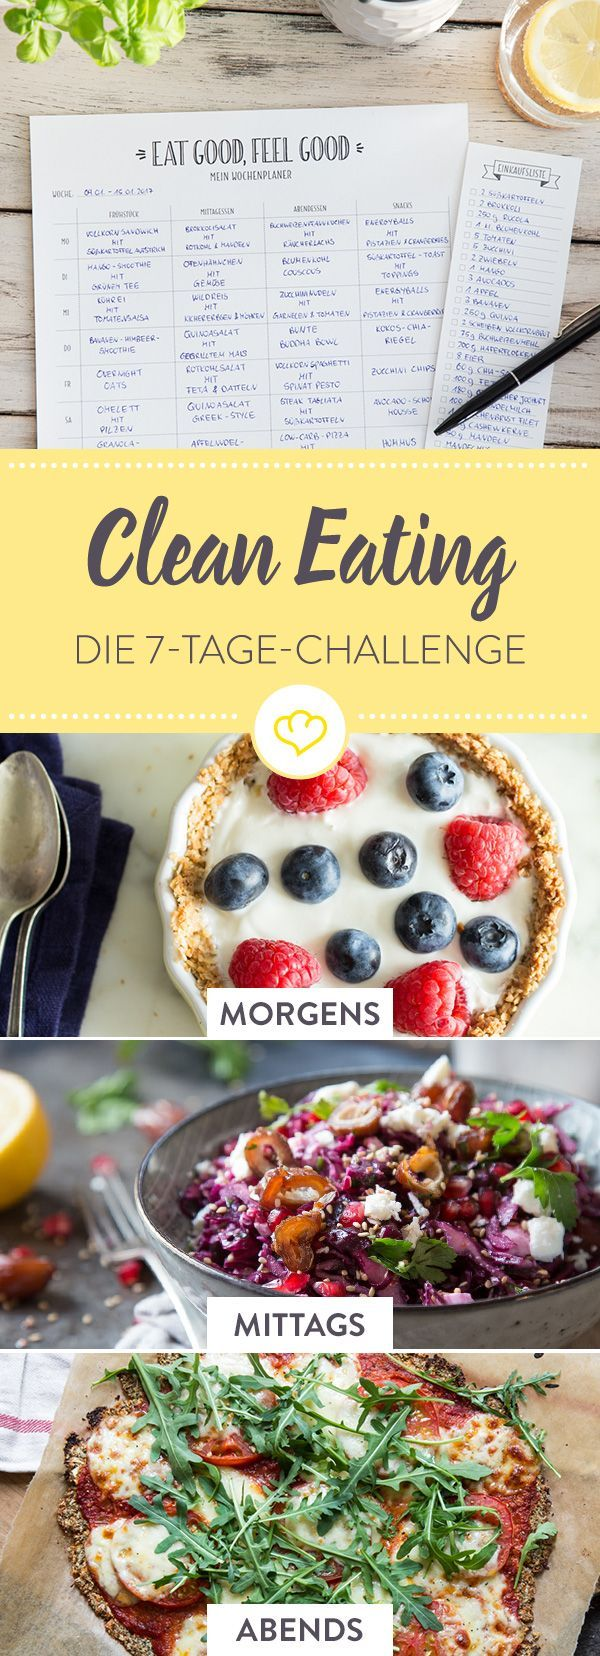 Clean Eating Challenge: How to change your diet